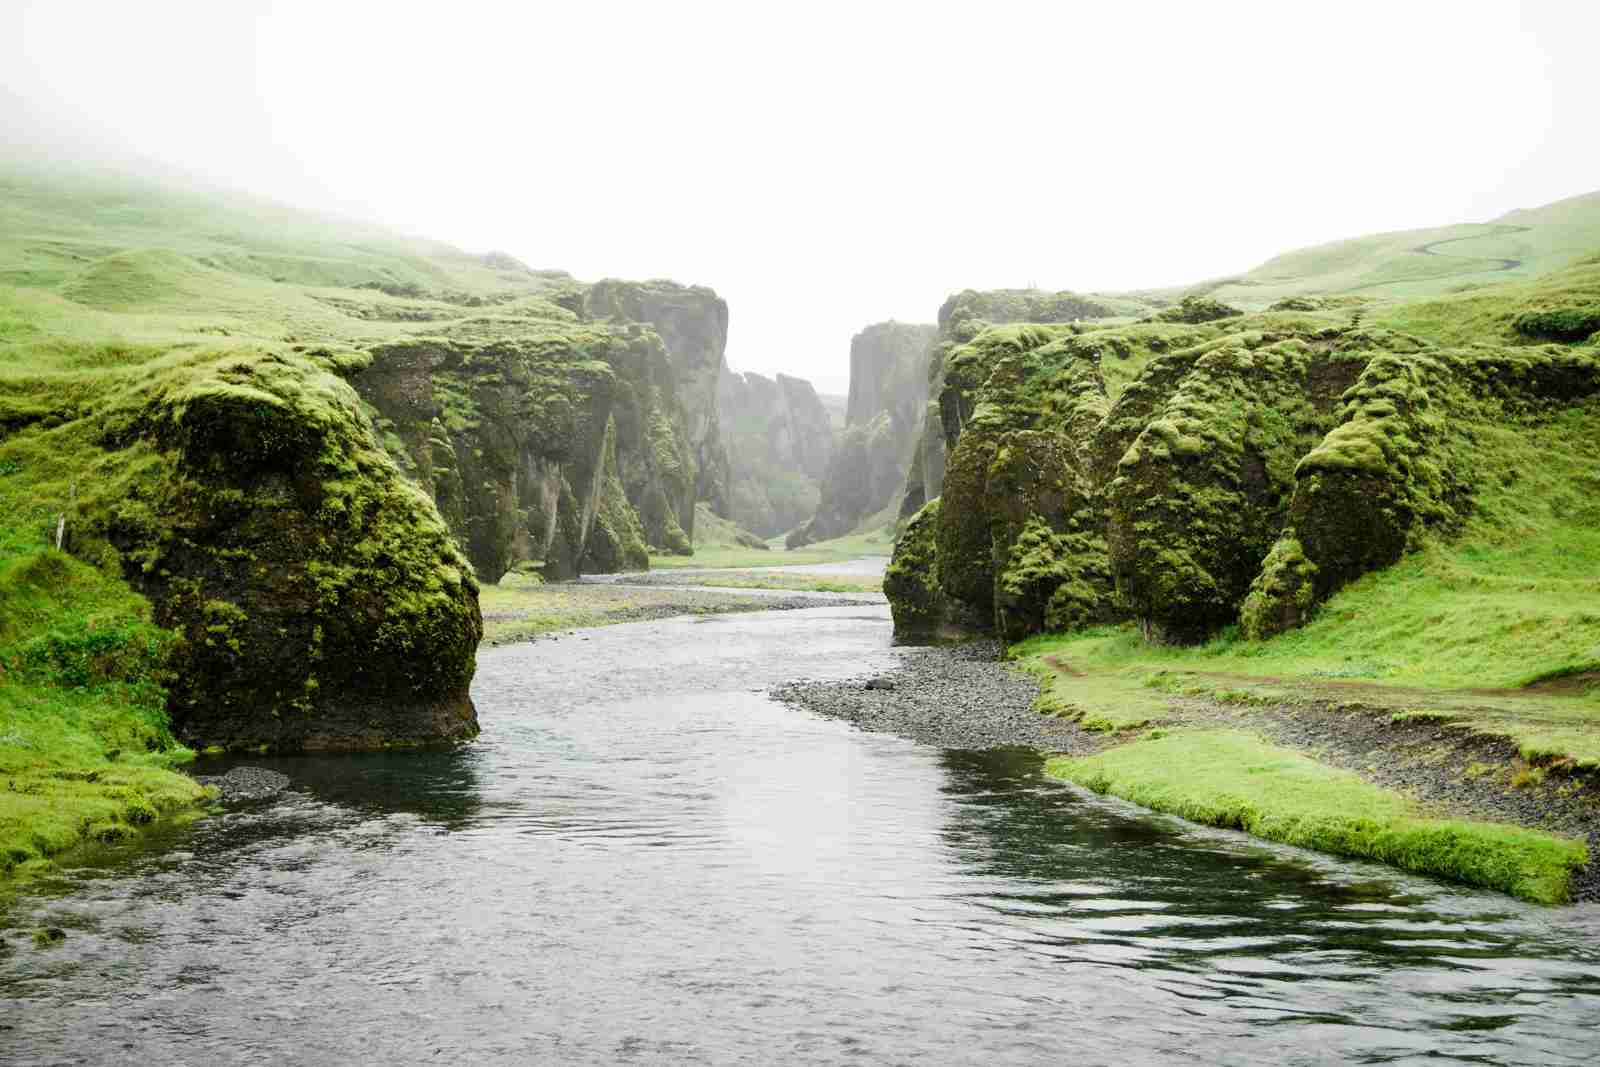 Fjaðrárgljúfur Canyon. (Photo by Martin Sanchez/Unsplash)